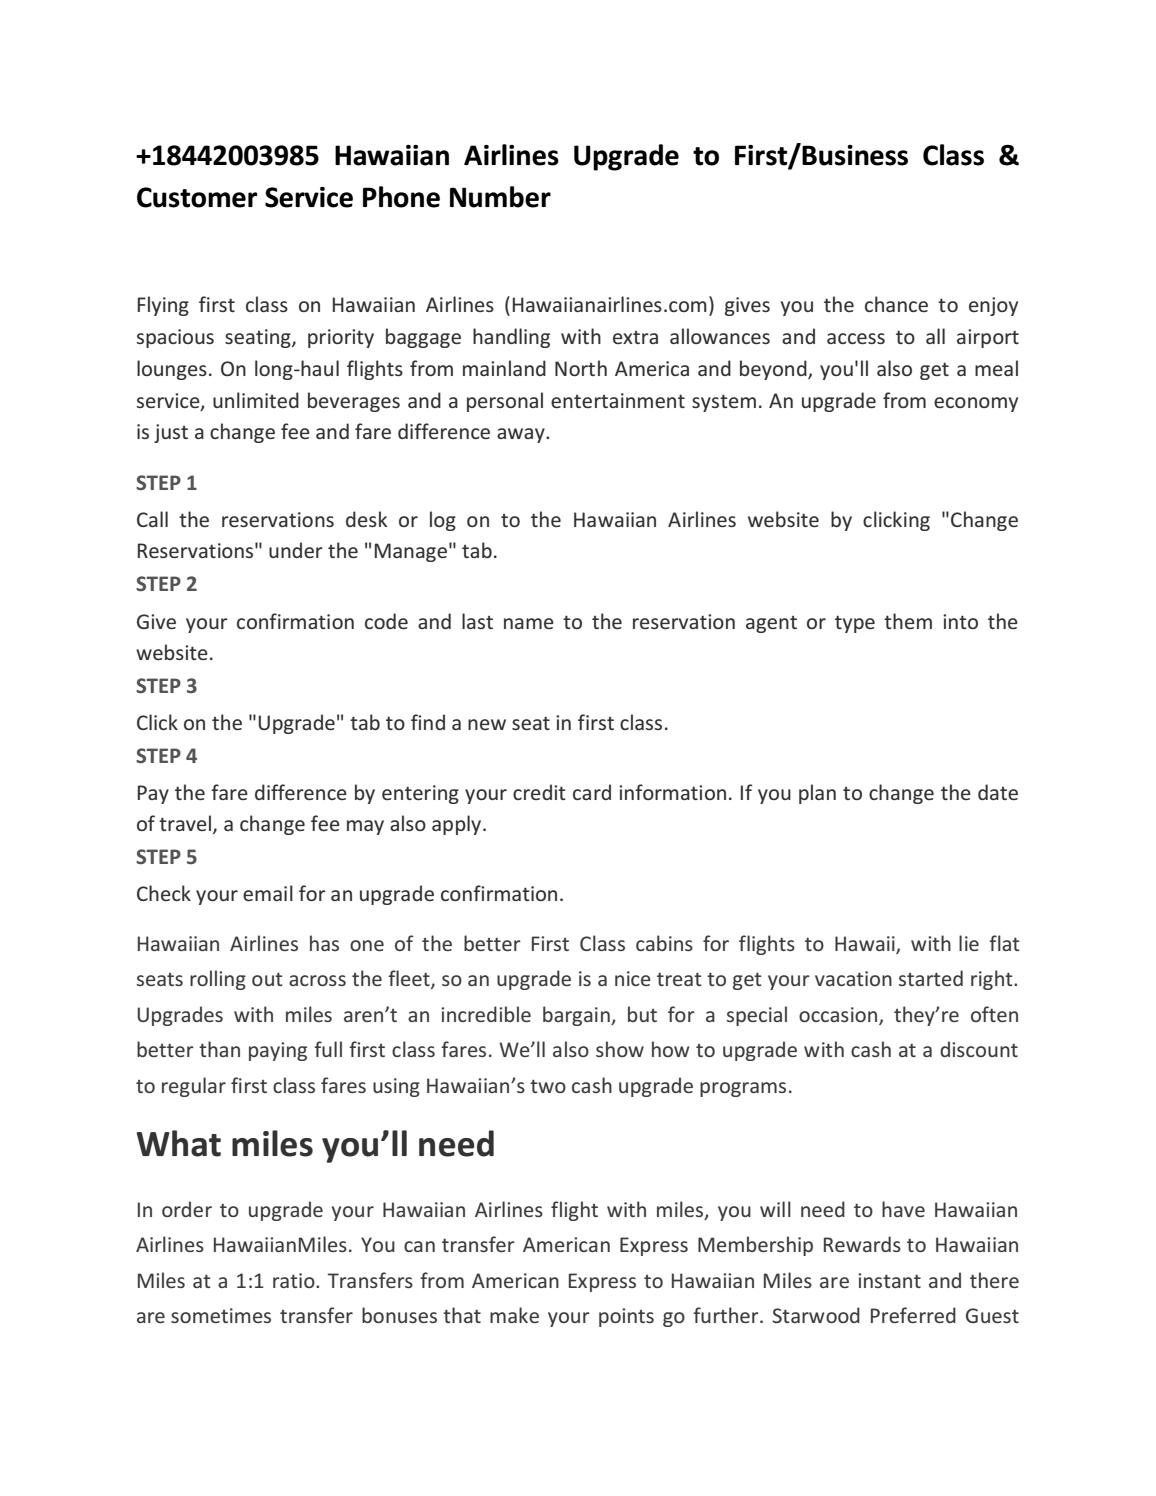 18442003985 hawaiian airlines upgrade to firstbusiness class 18442003985 hawaiian airlines upgrade to firstbusiness class customer service phone number by abigail derry issuu colourmoves